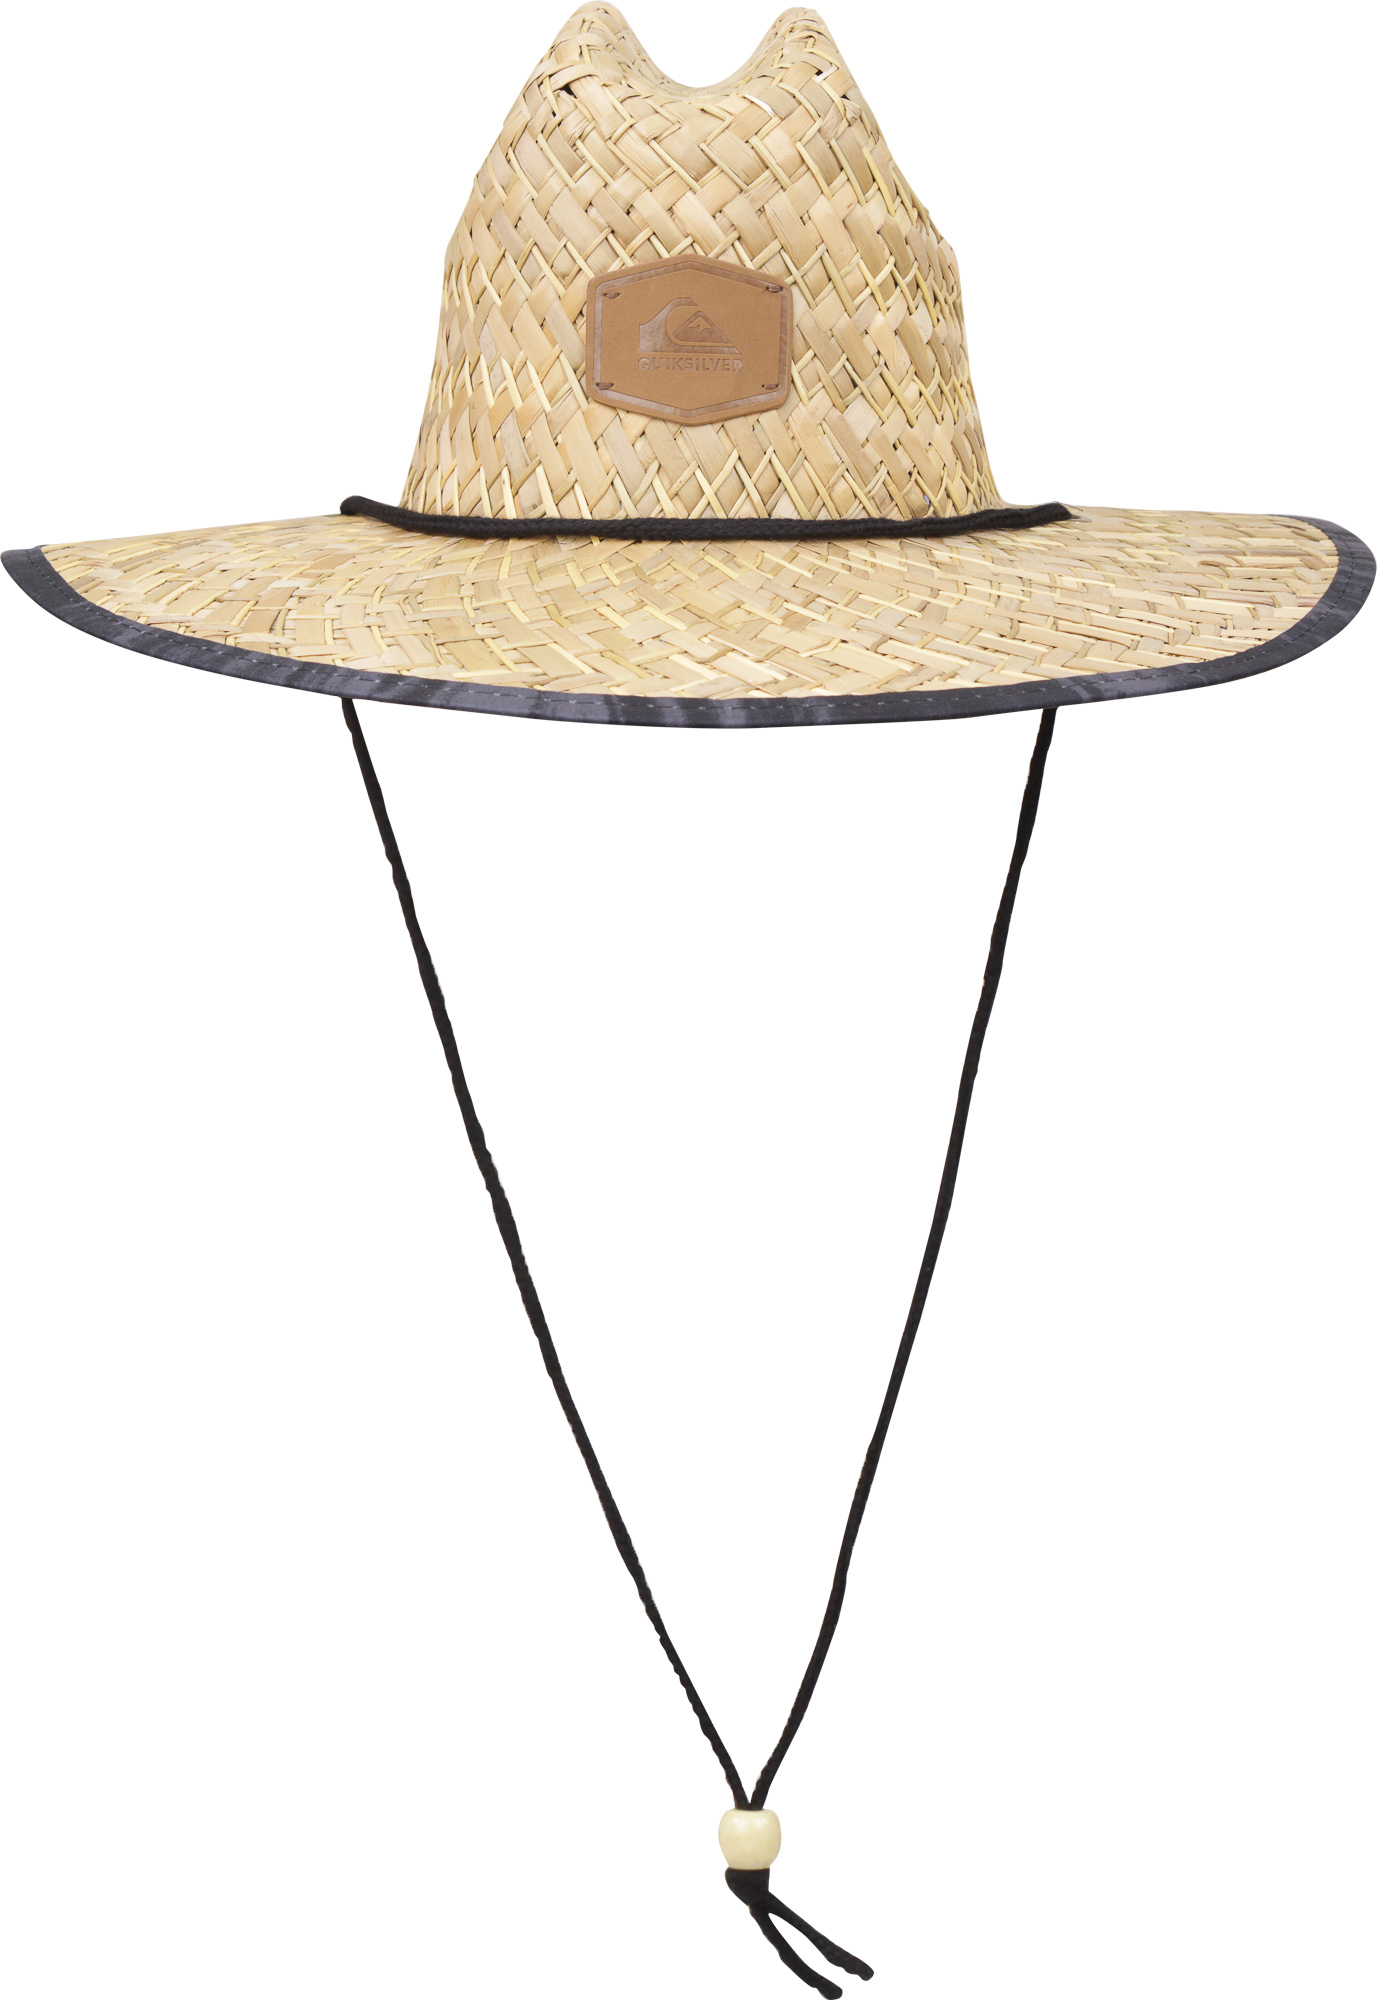 Details about Quiksilver Mens Outsider Wide Brim Straw Sun Hat - Straw Black  Heather eec6c345148e